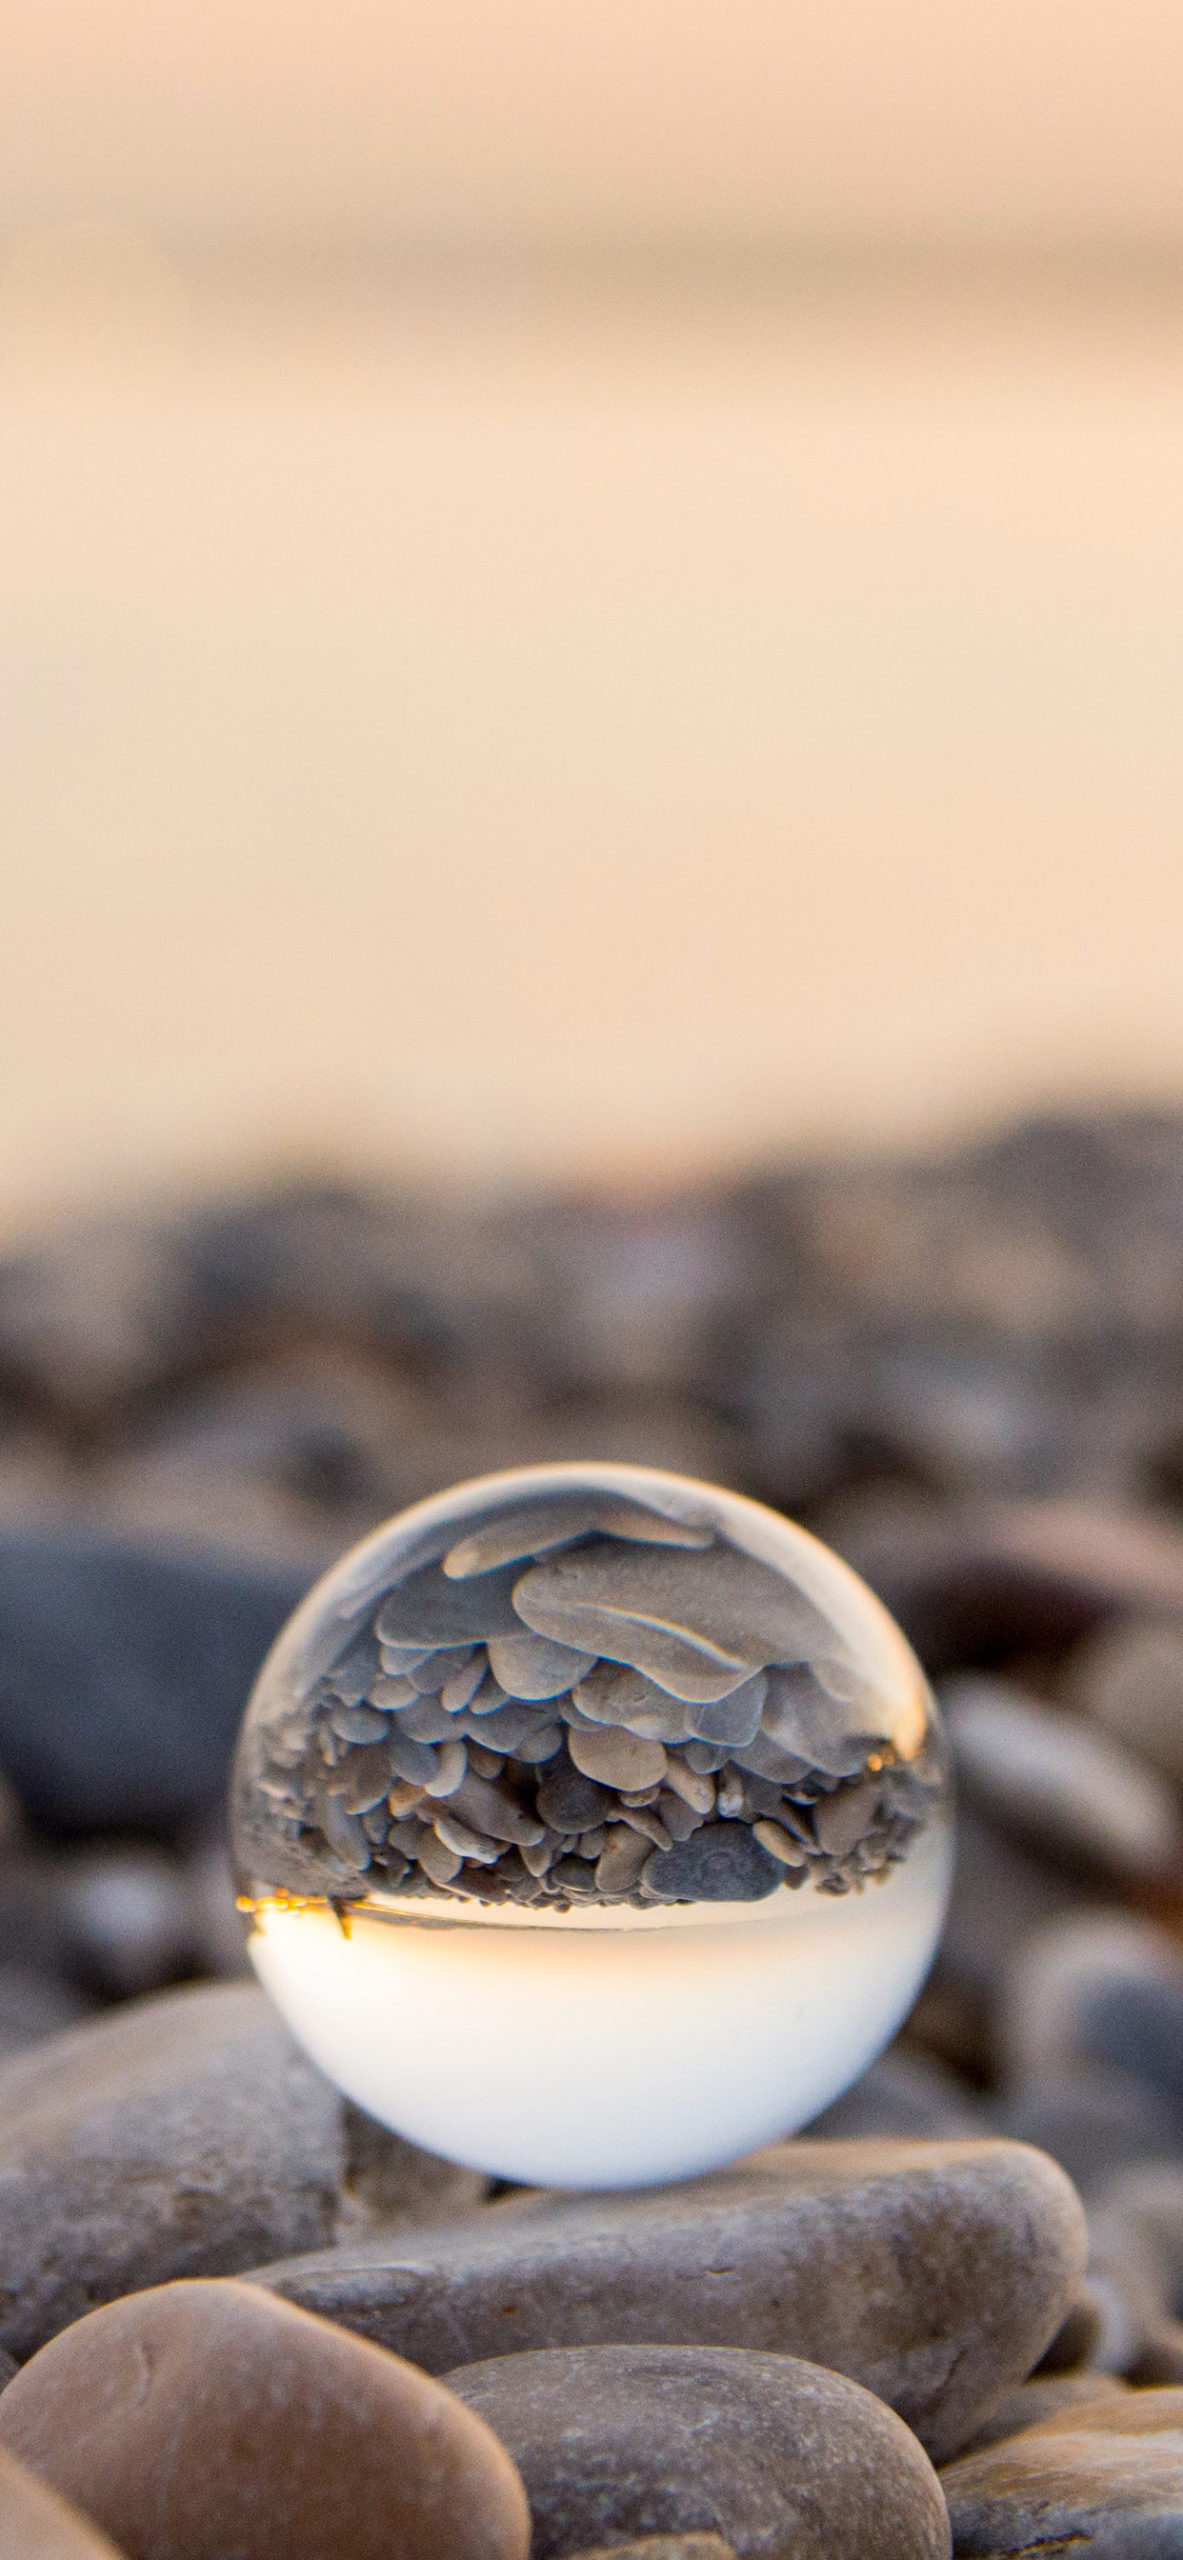 iphone wallpapers cristal ball scaled Crystal ball